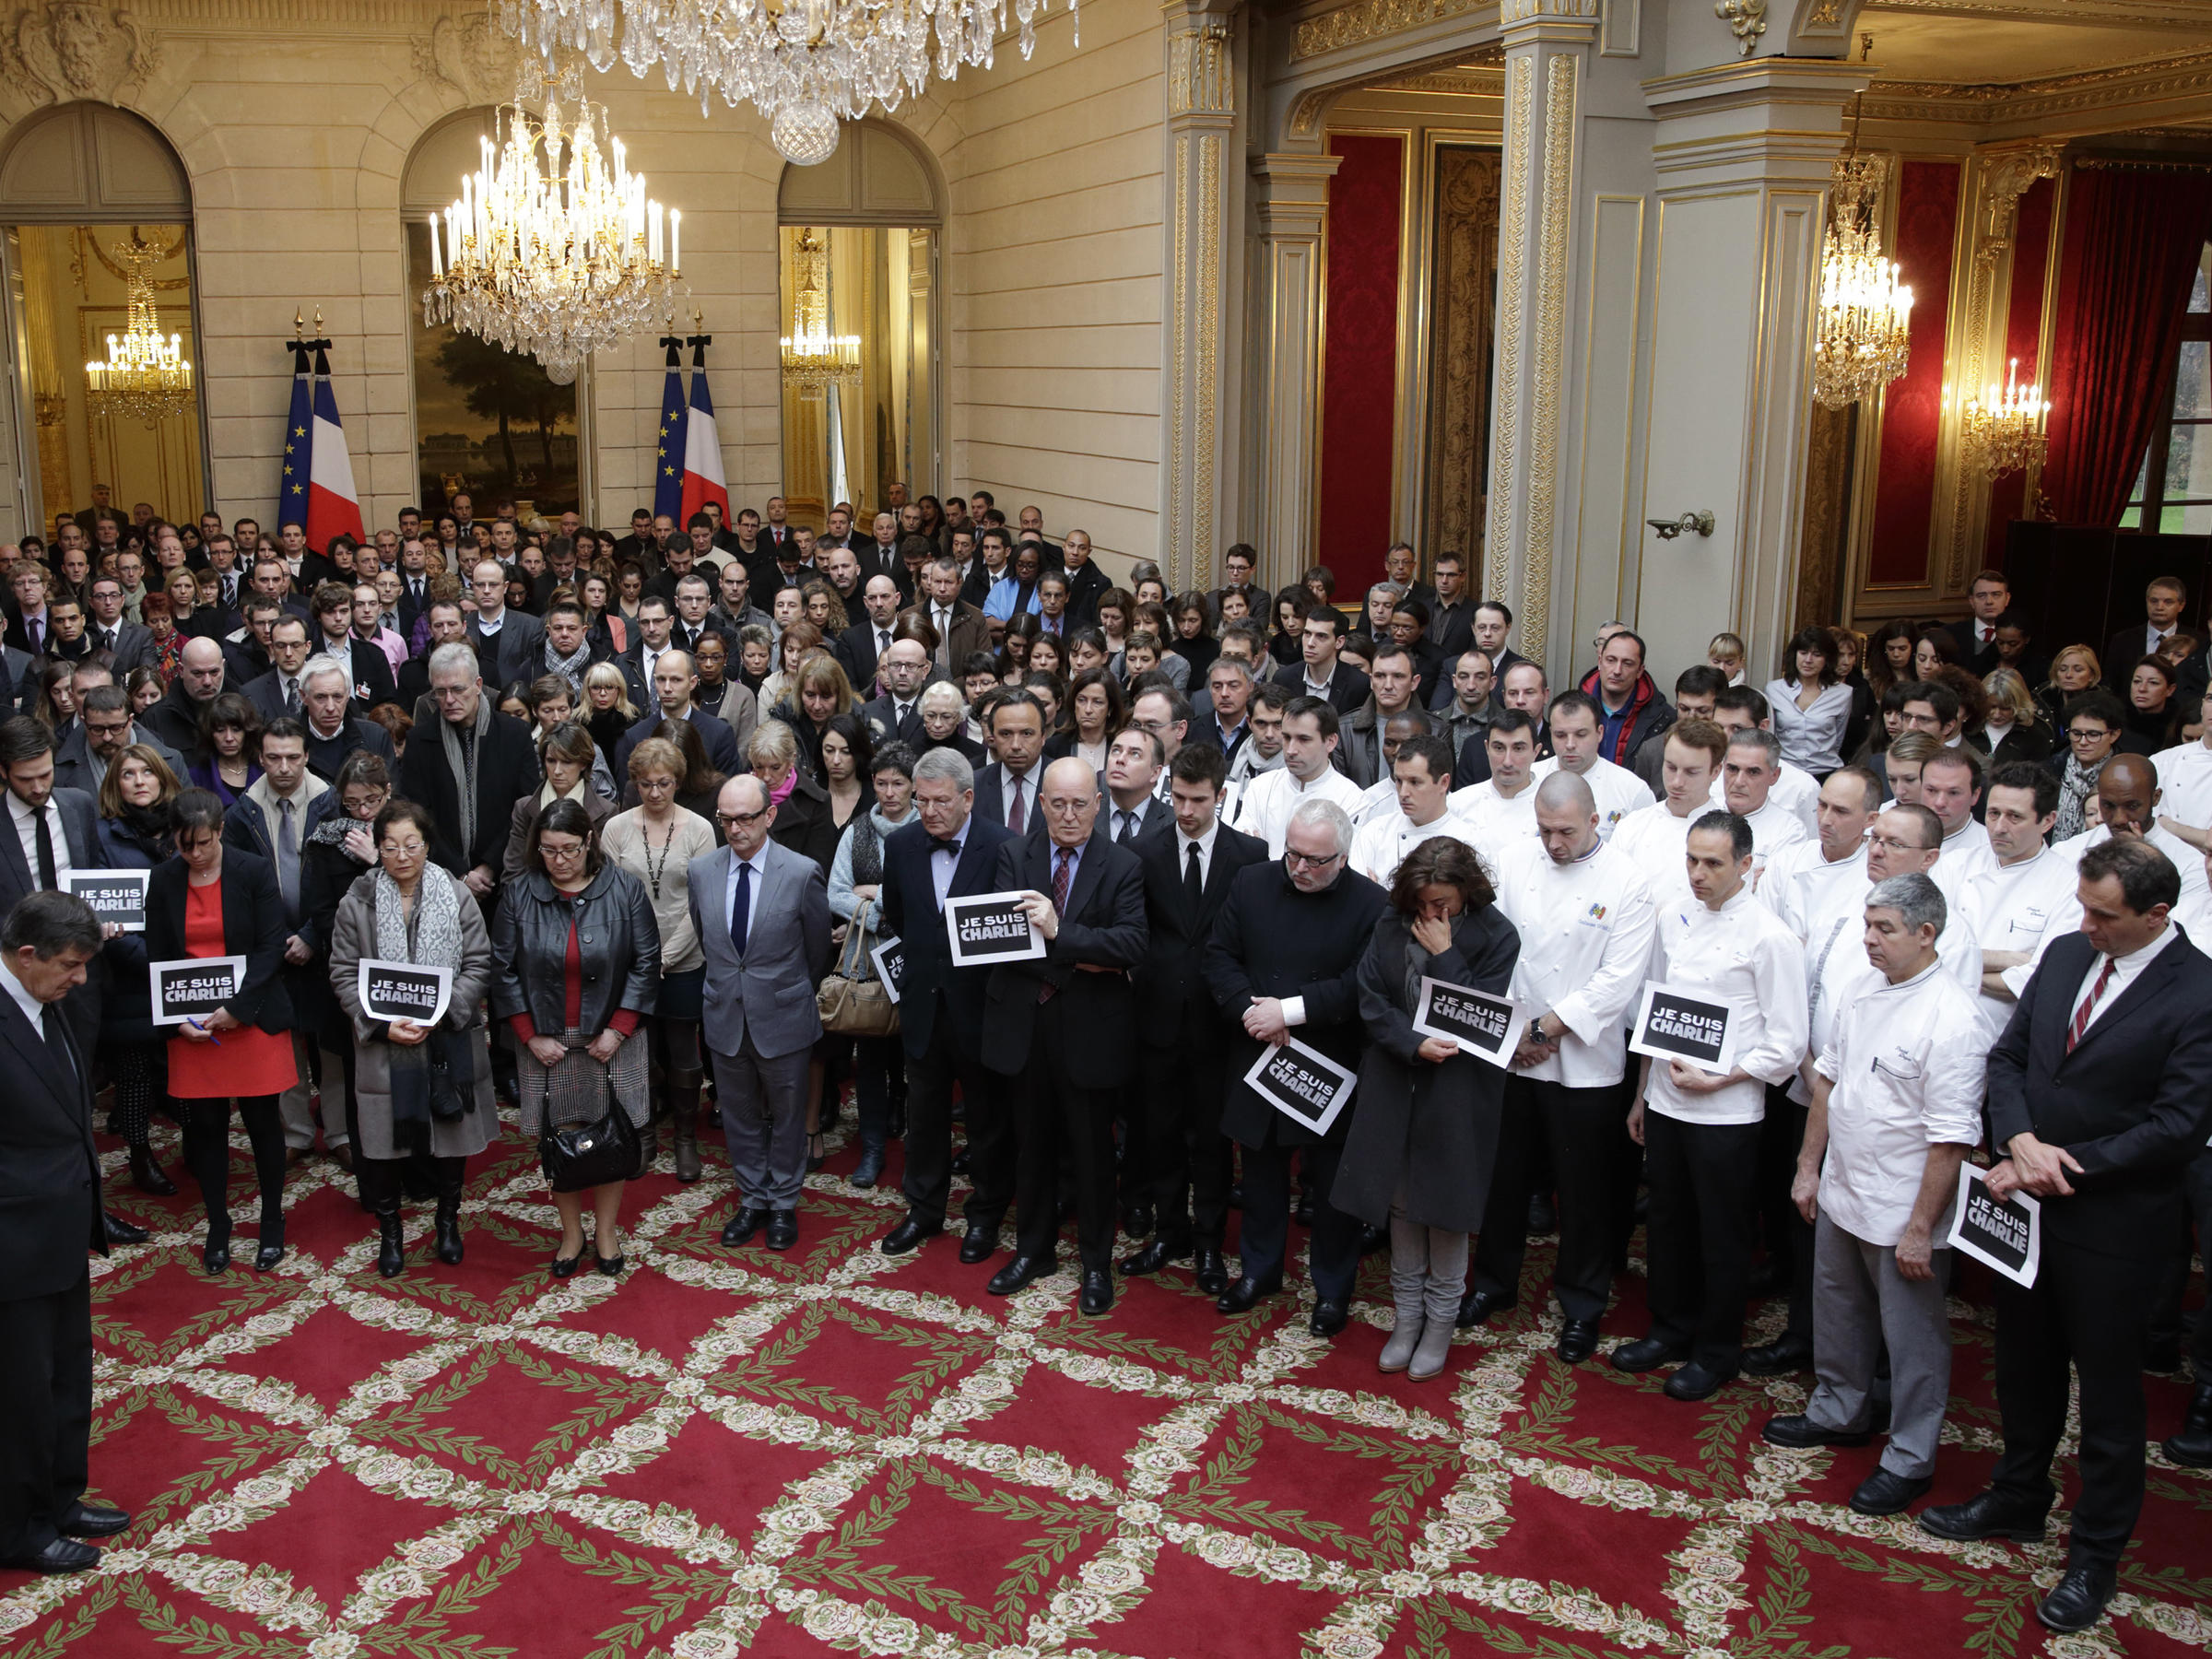 France Observes Moment Of Silence For Charlie Hebdo Victims Connecticut Public Radio